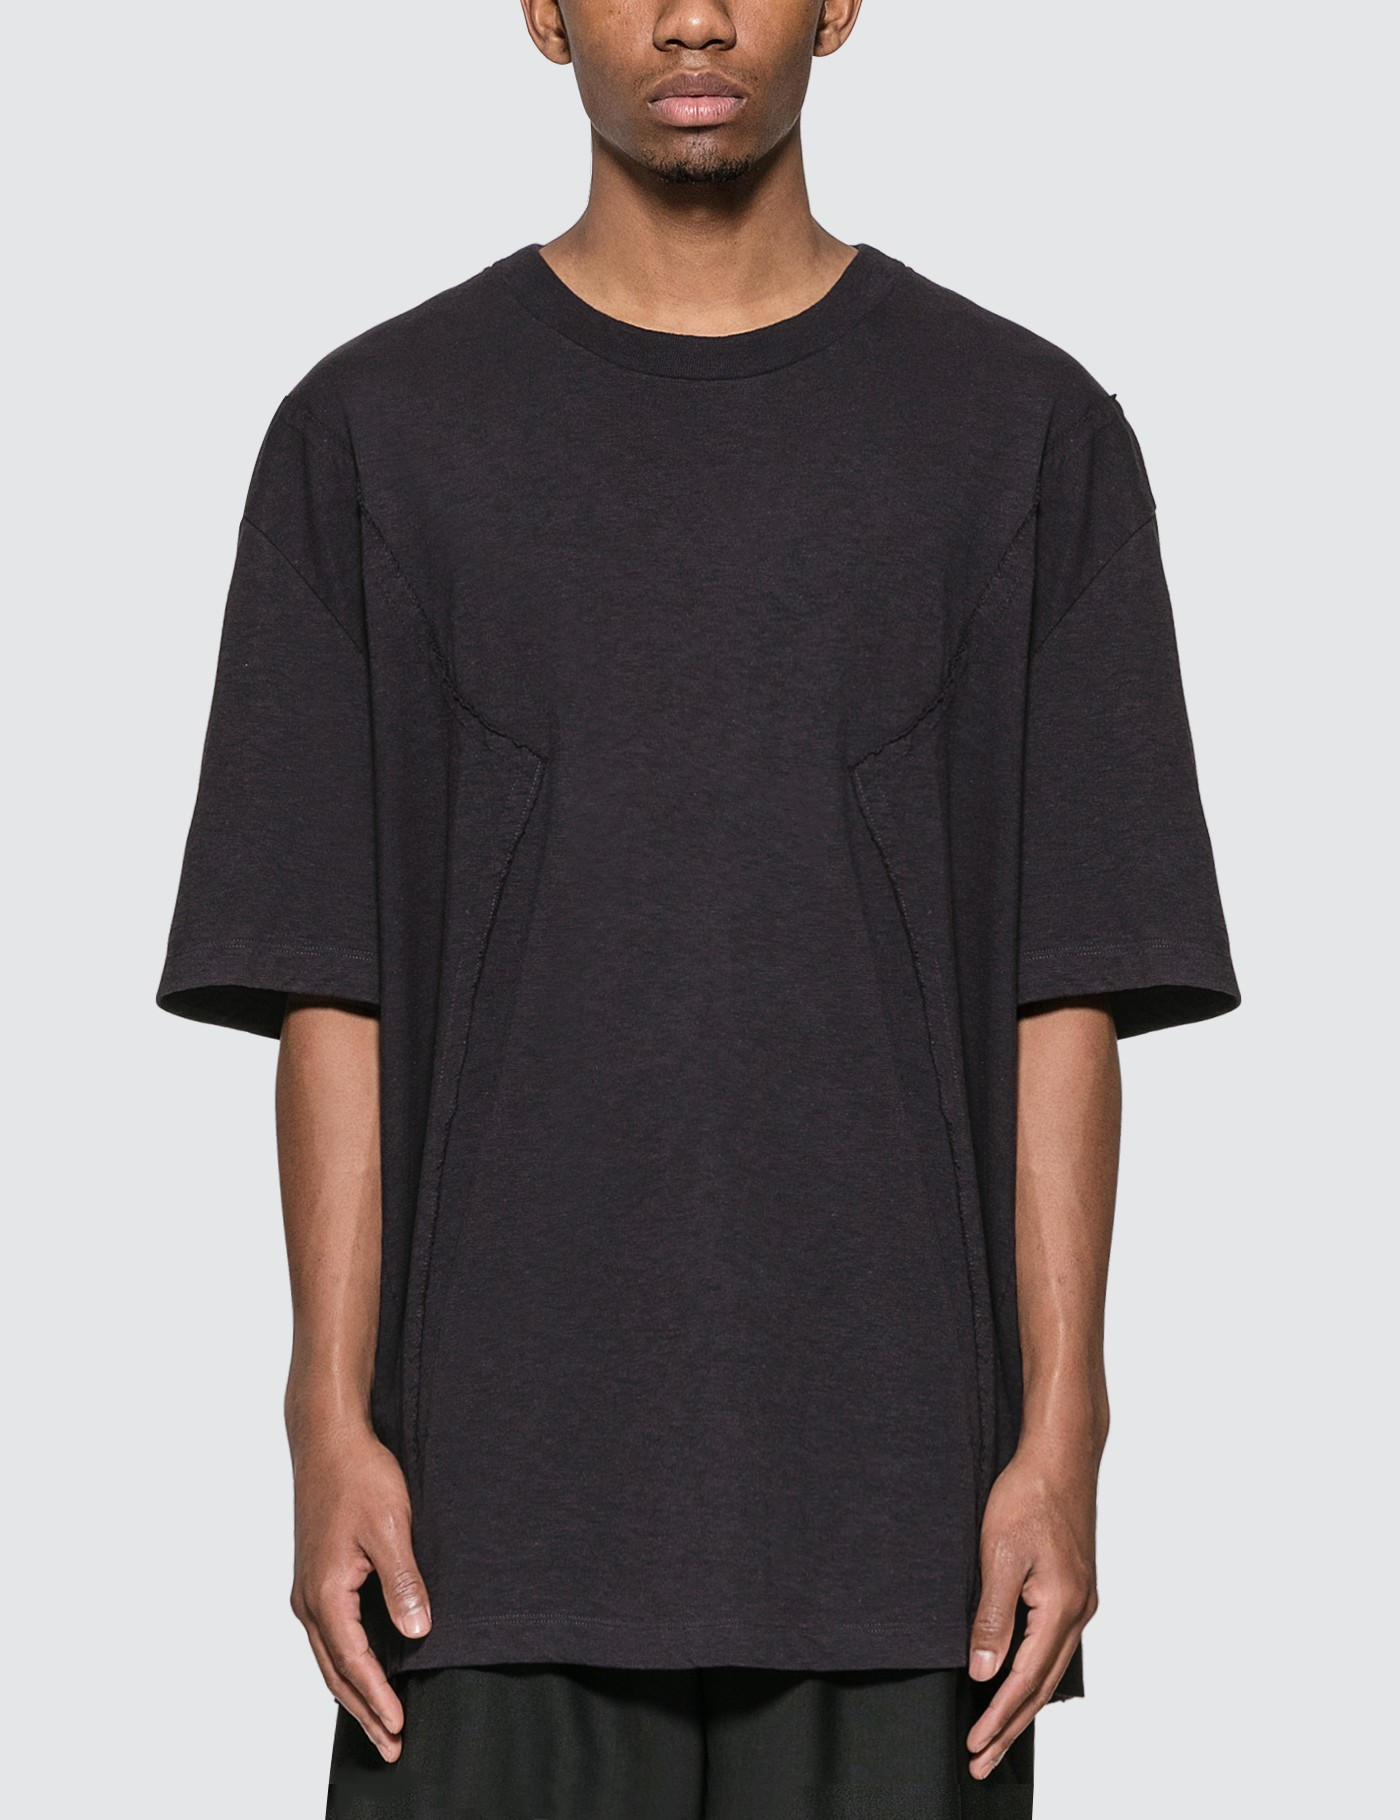 Over Fit T-shirt